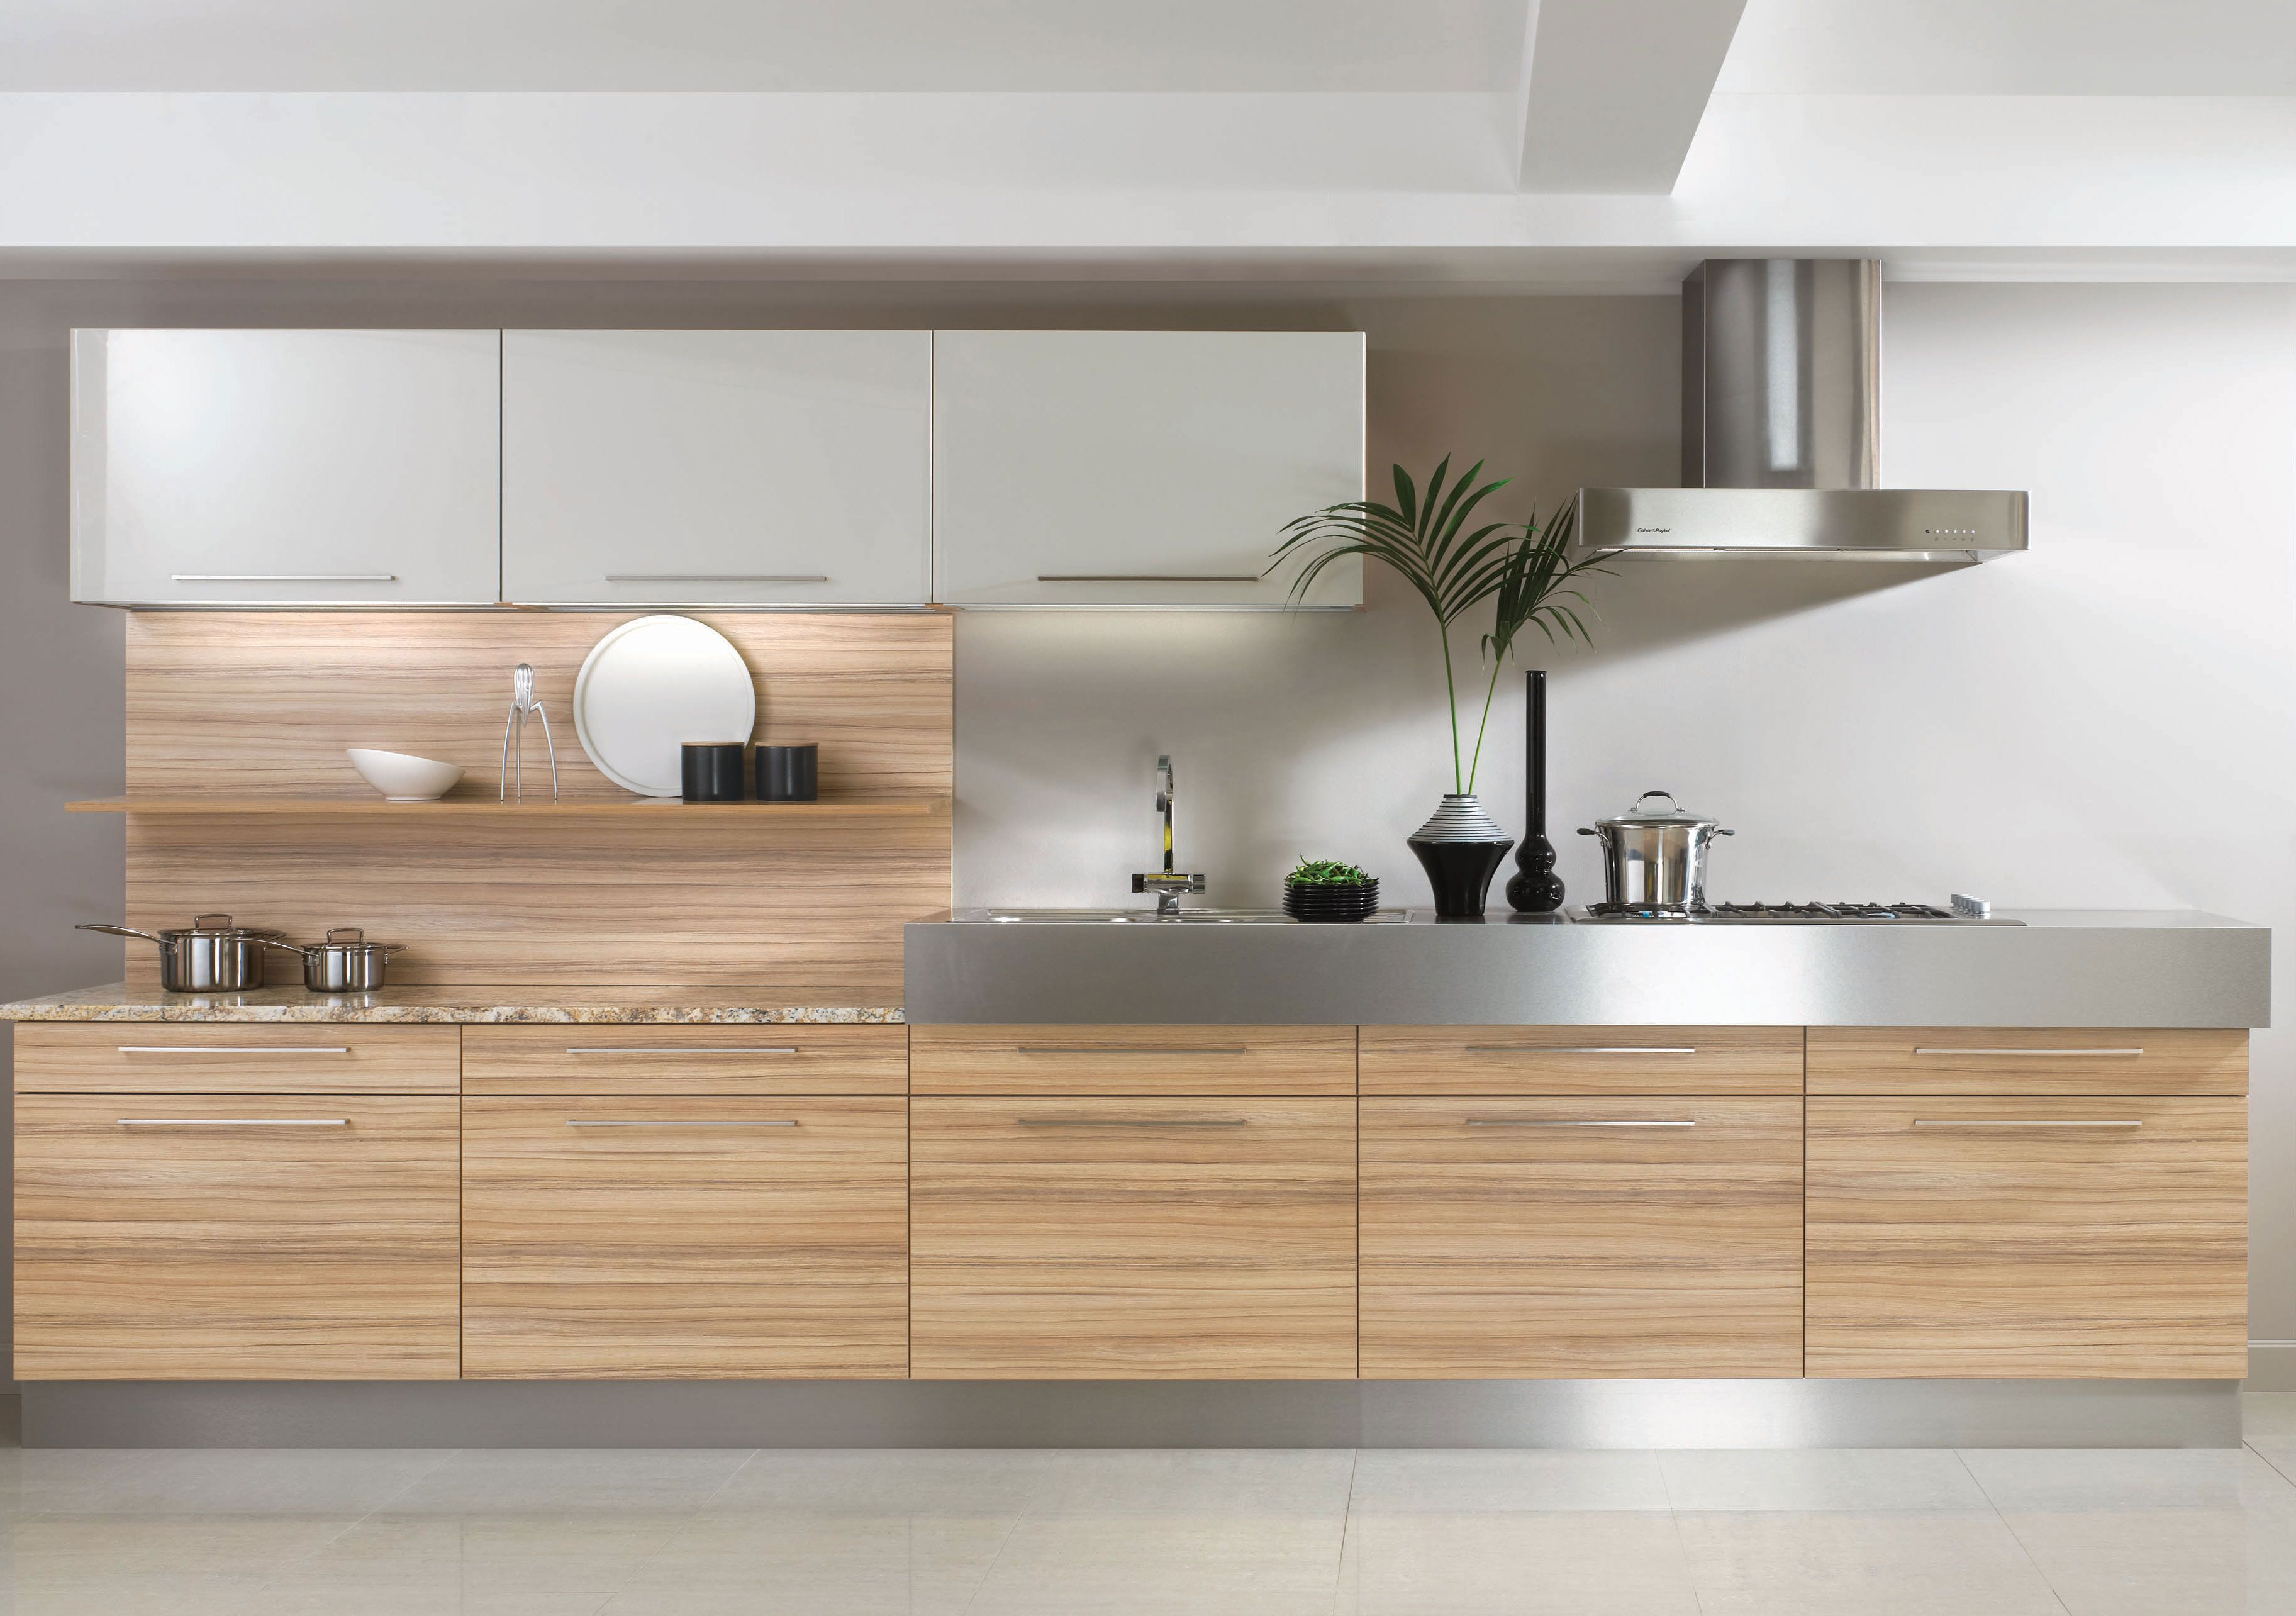 Coco Bolo Kitchen Units Combined With Stainless Steel Worktops For A Modern But Very Practical Ki Free Kitchen Design Kitchen Inspiration Modern Kitchen Design